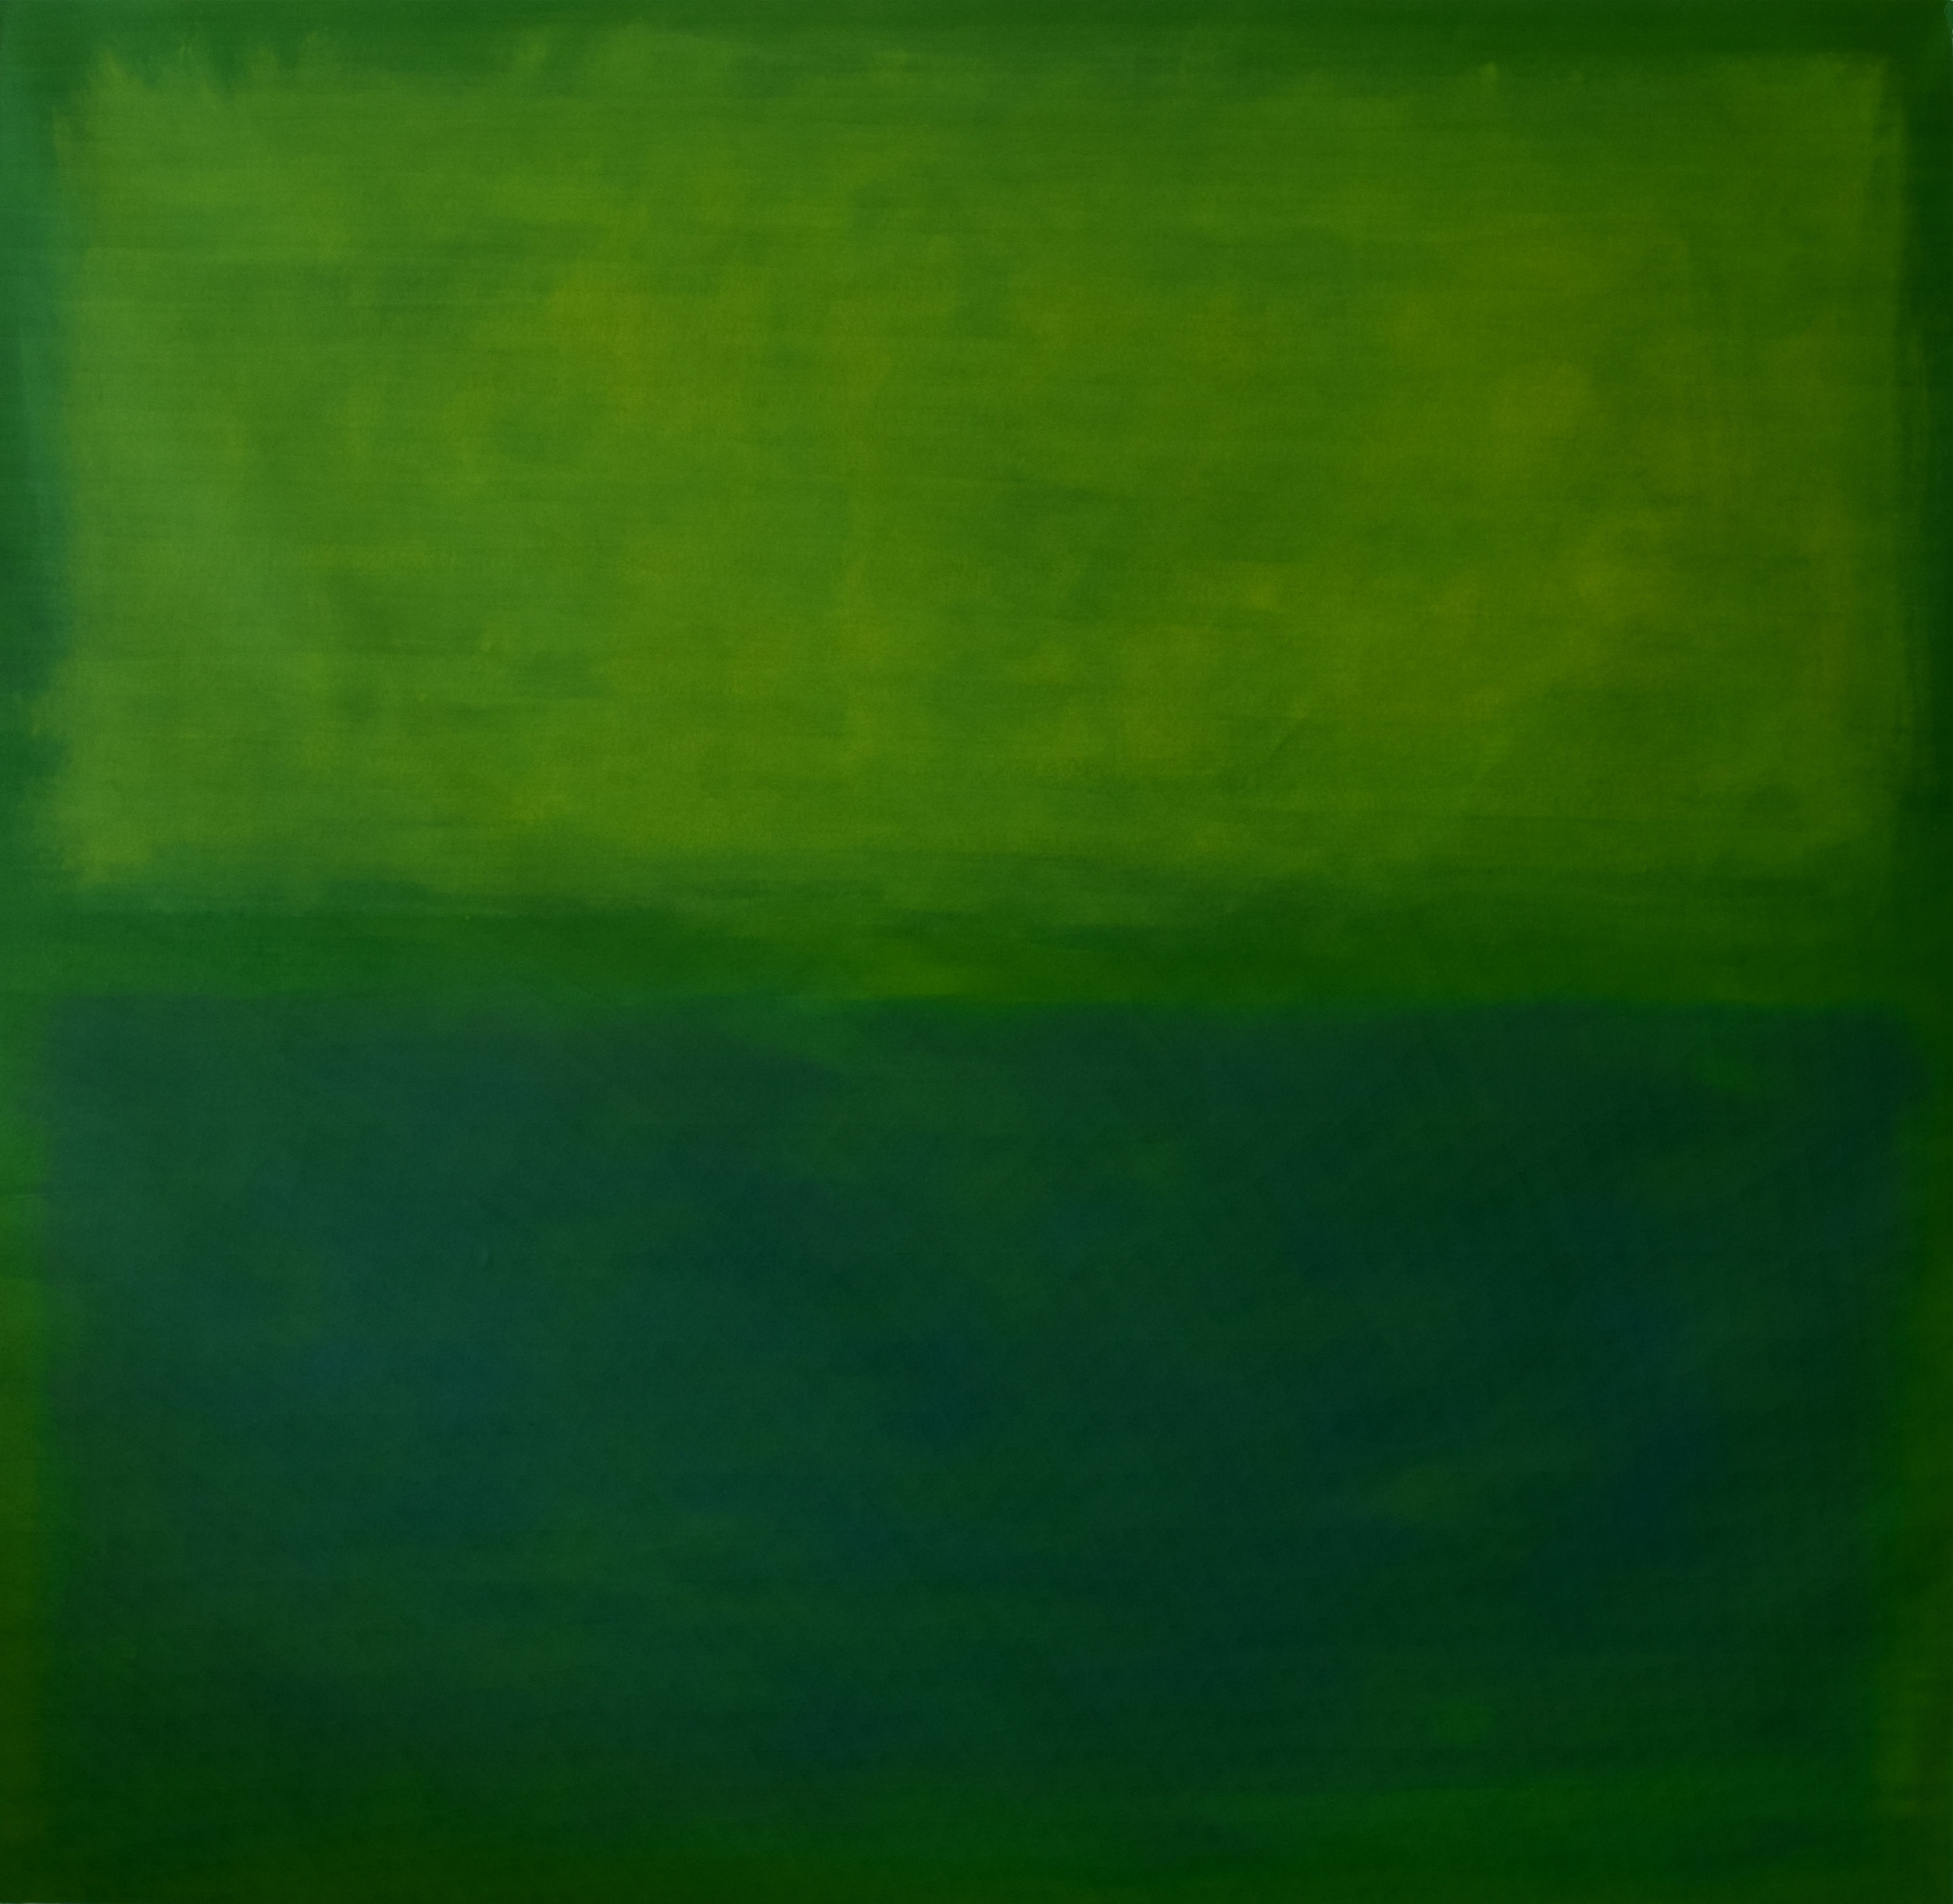 """Green Colorfield"", oil on canvas, 48""x48"", AVAILABLE"